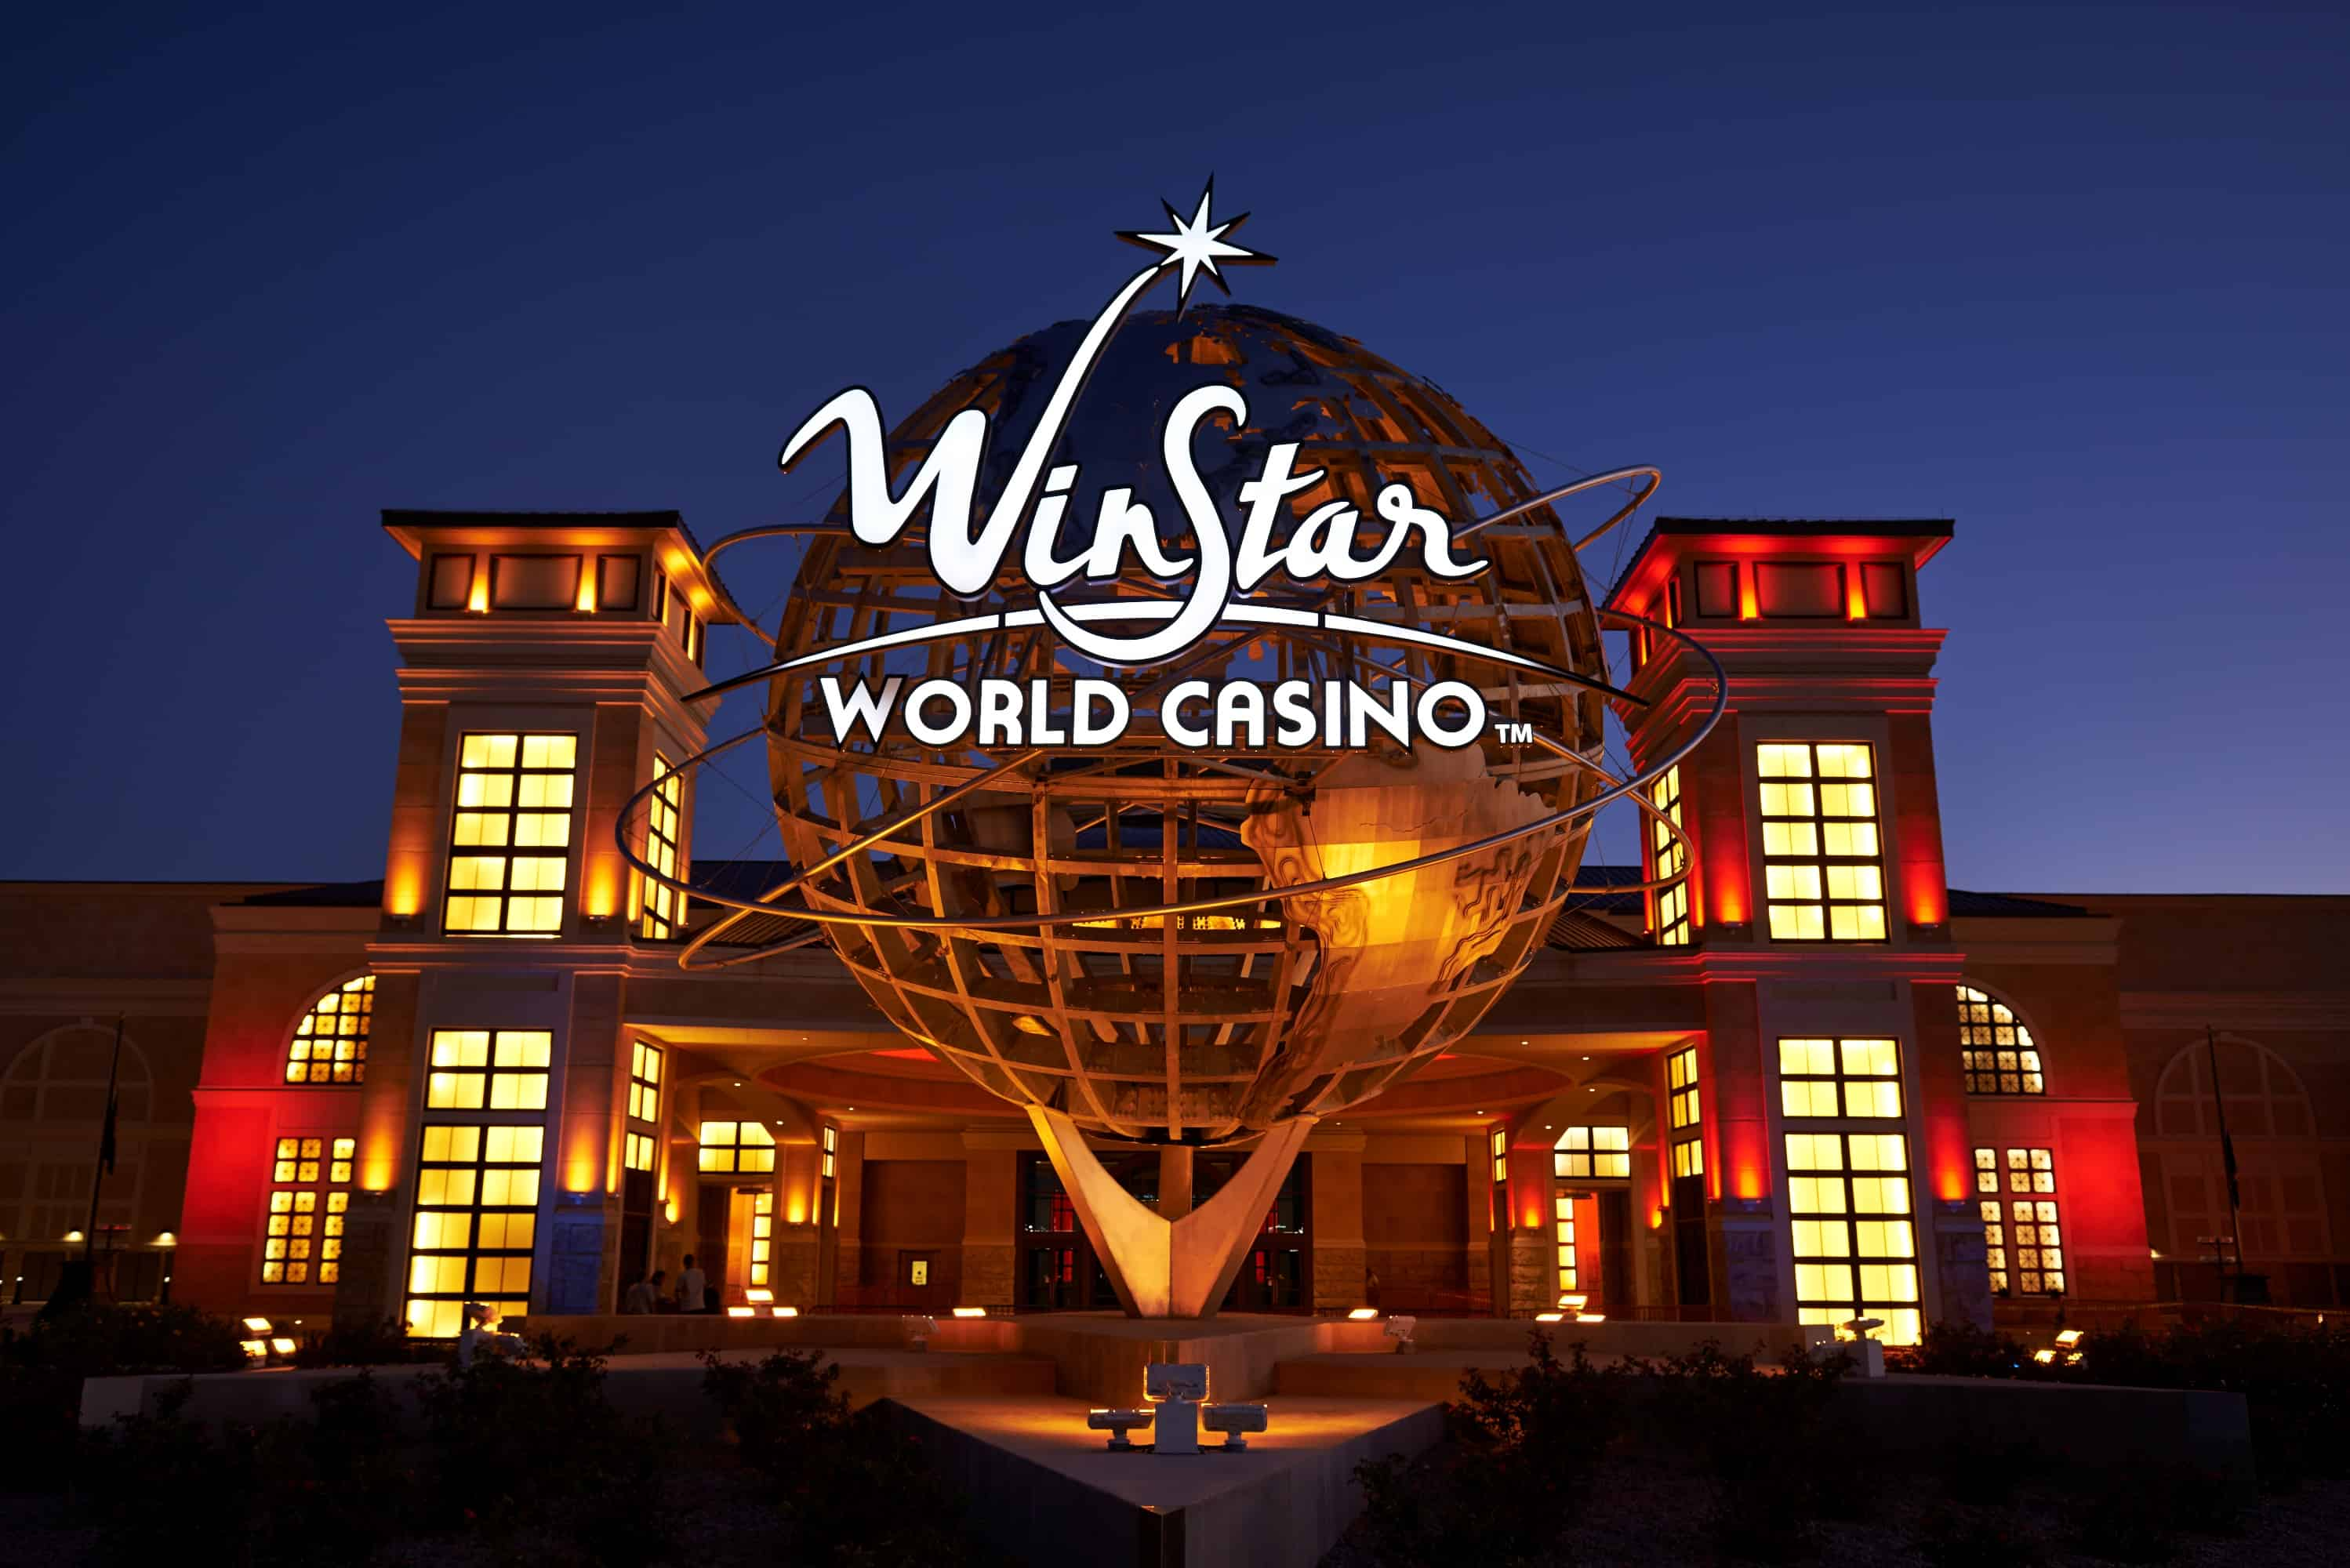 Who Owns The Star Casino